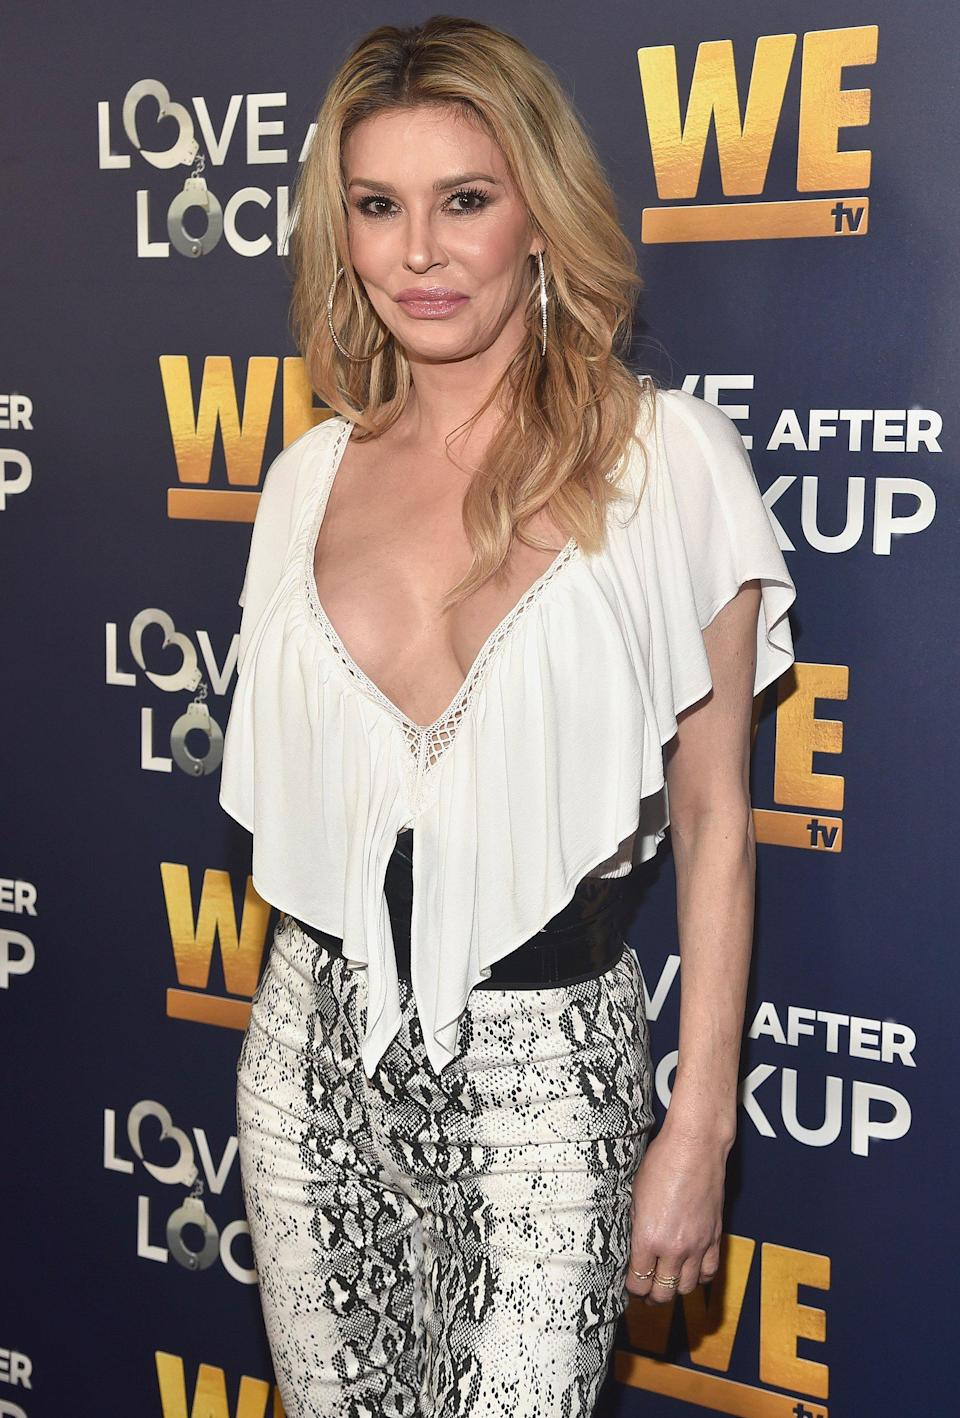 Brandi Glanville Cries Over Photos of Herself Looking 'Wasted': 'I Embarrassed My Kids'